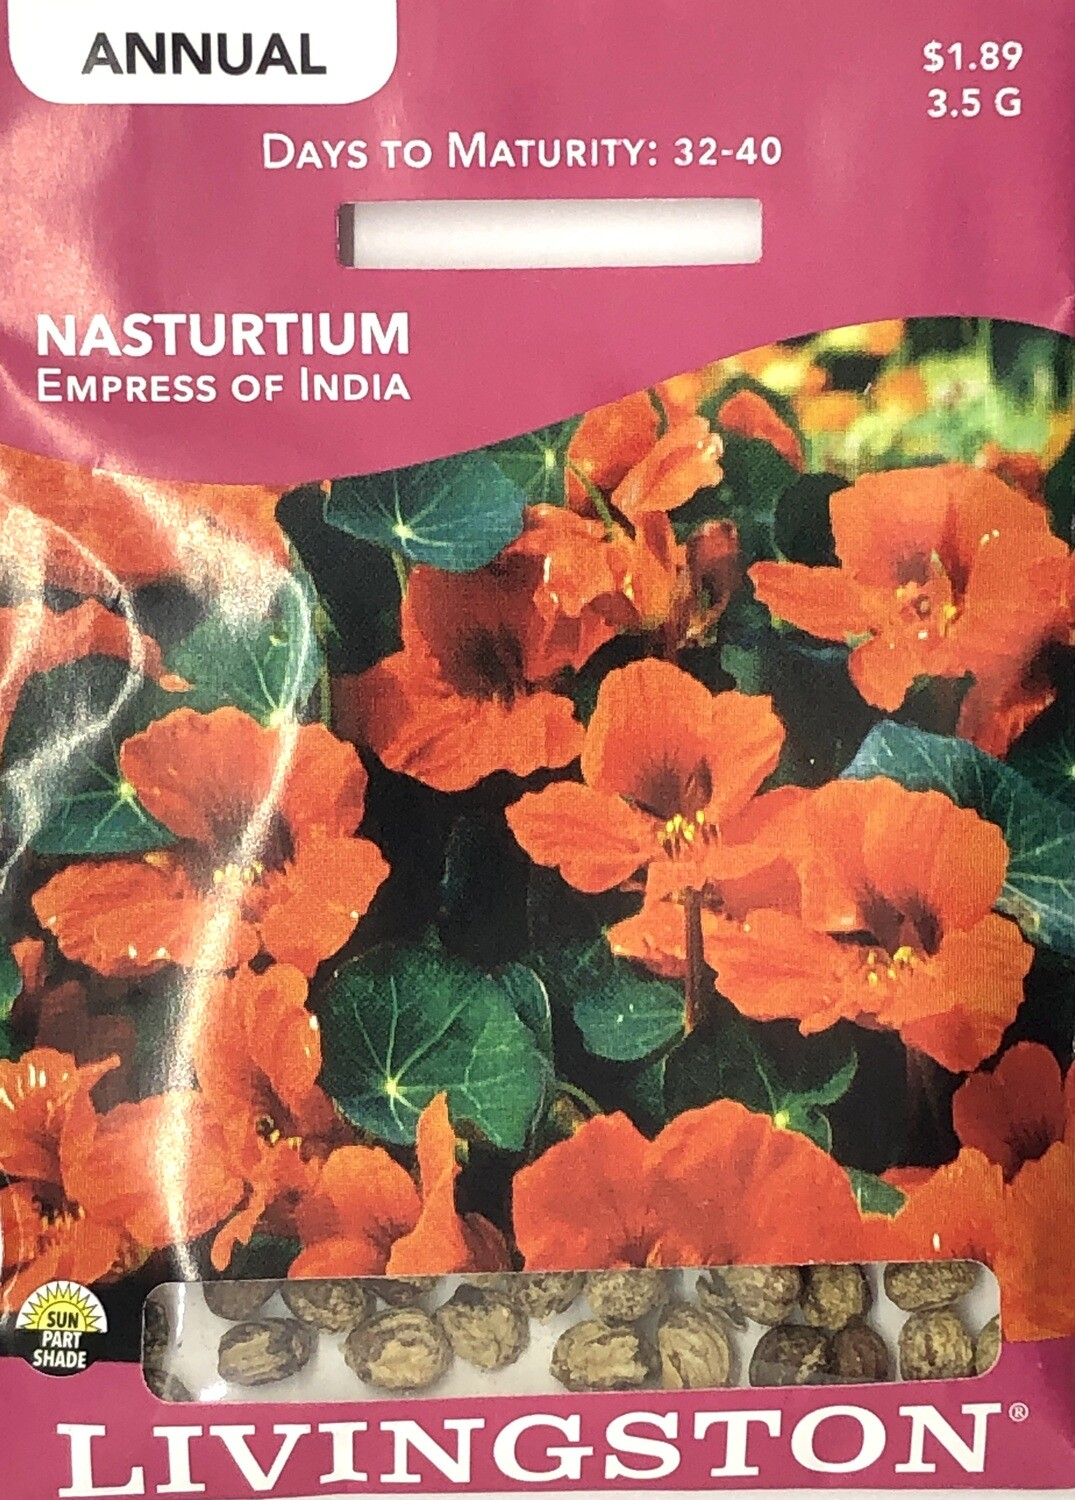 NASTURTIUM - EMPRESS OF INDIA